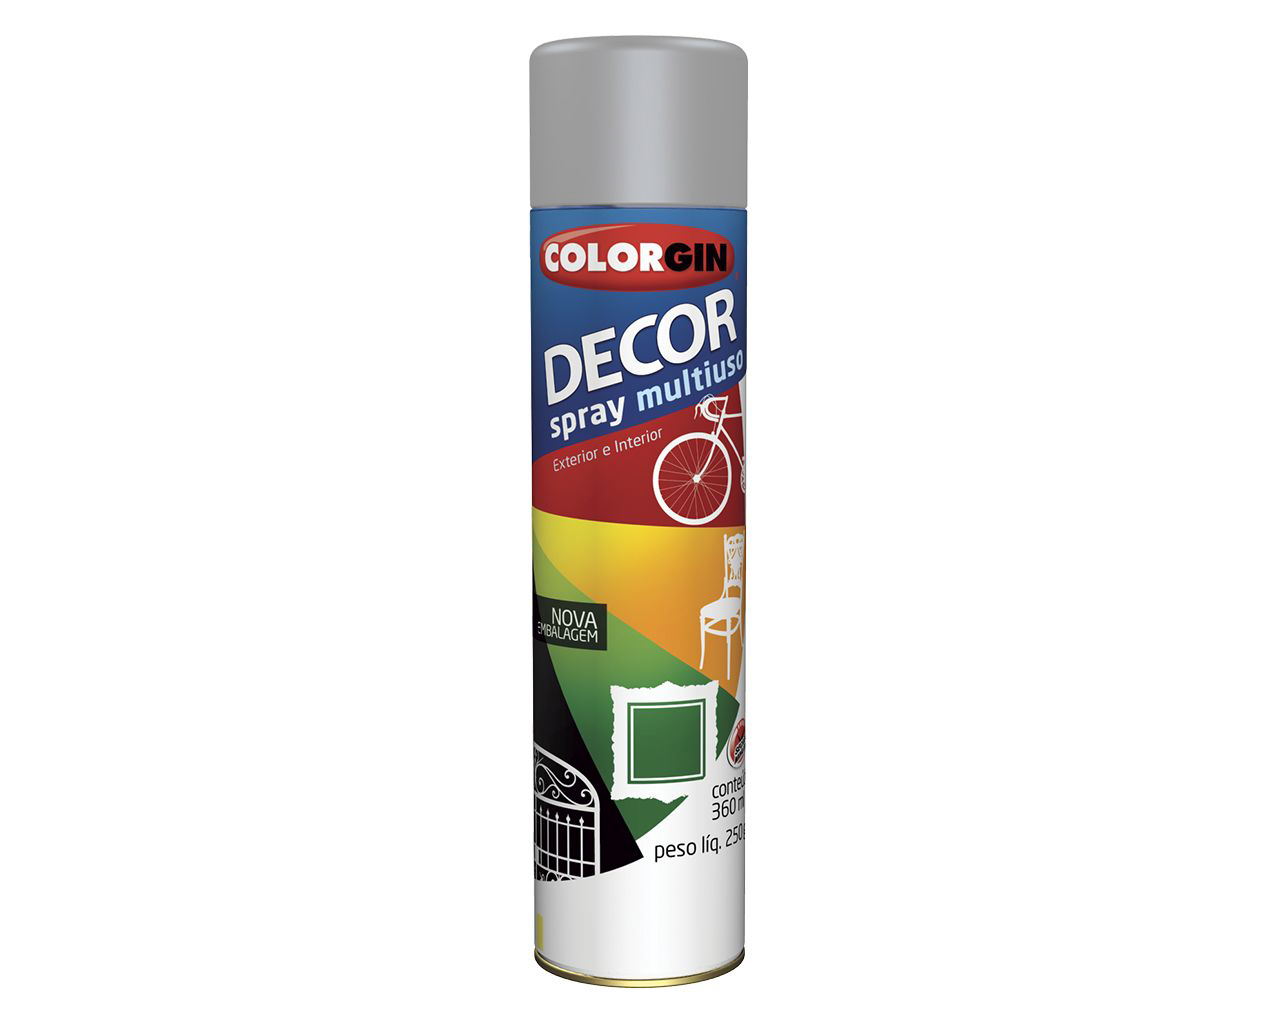 TINTA SPRAY DECOR CINZA